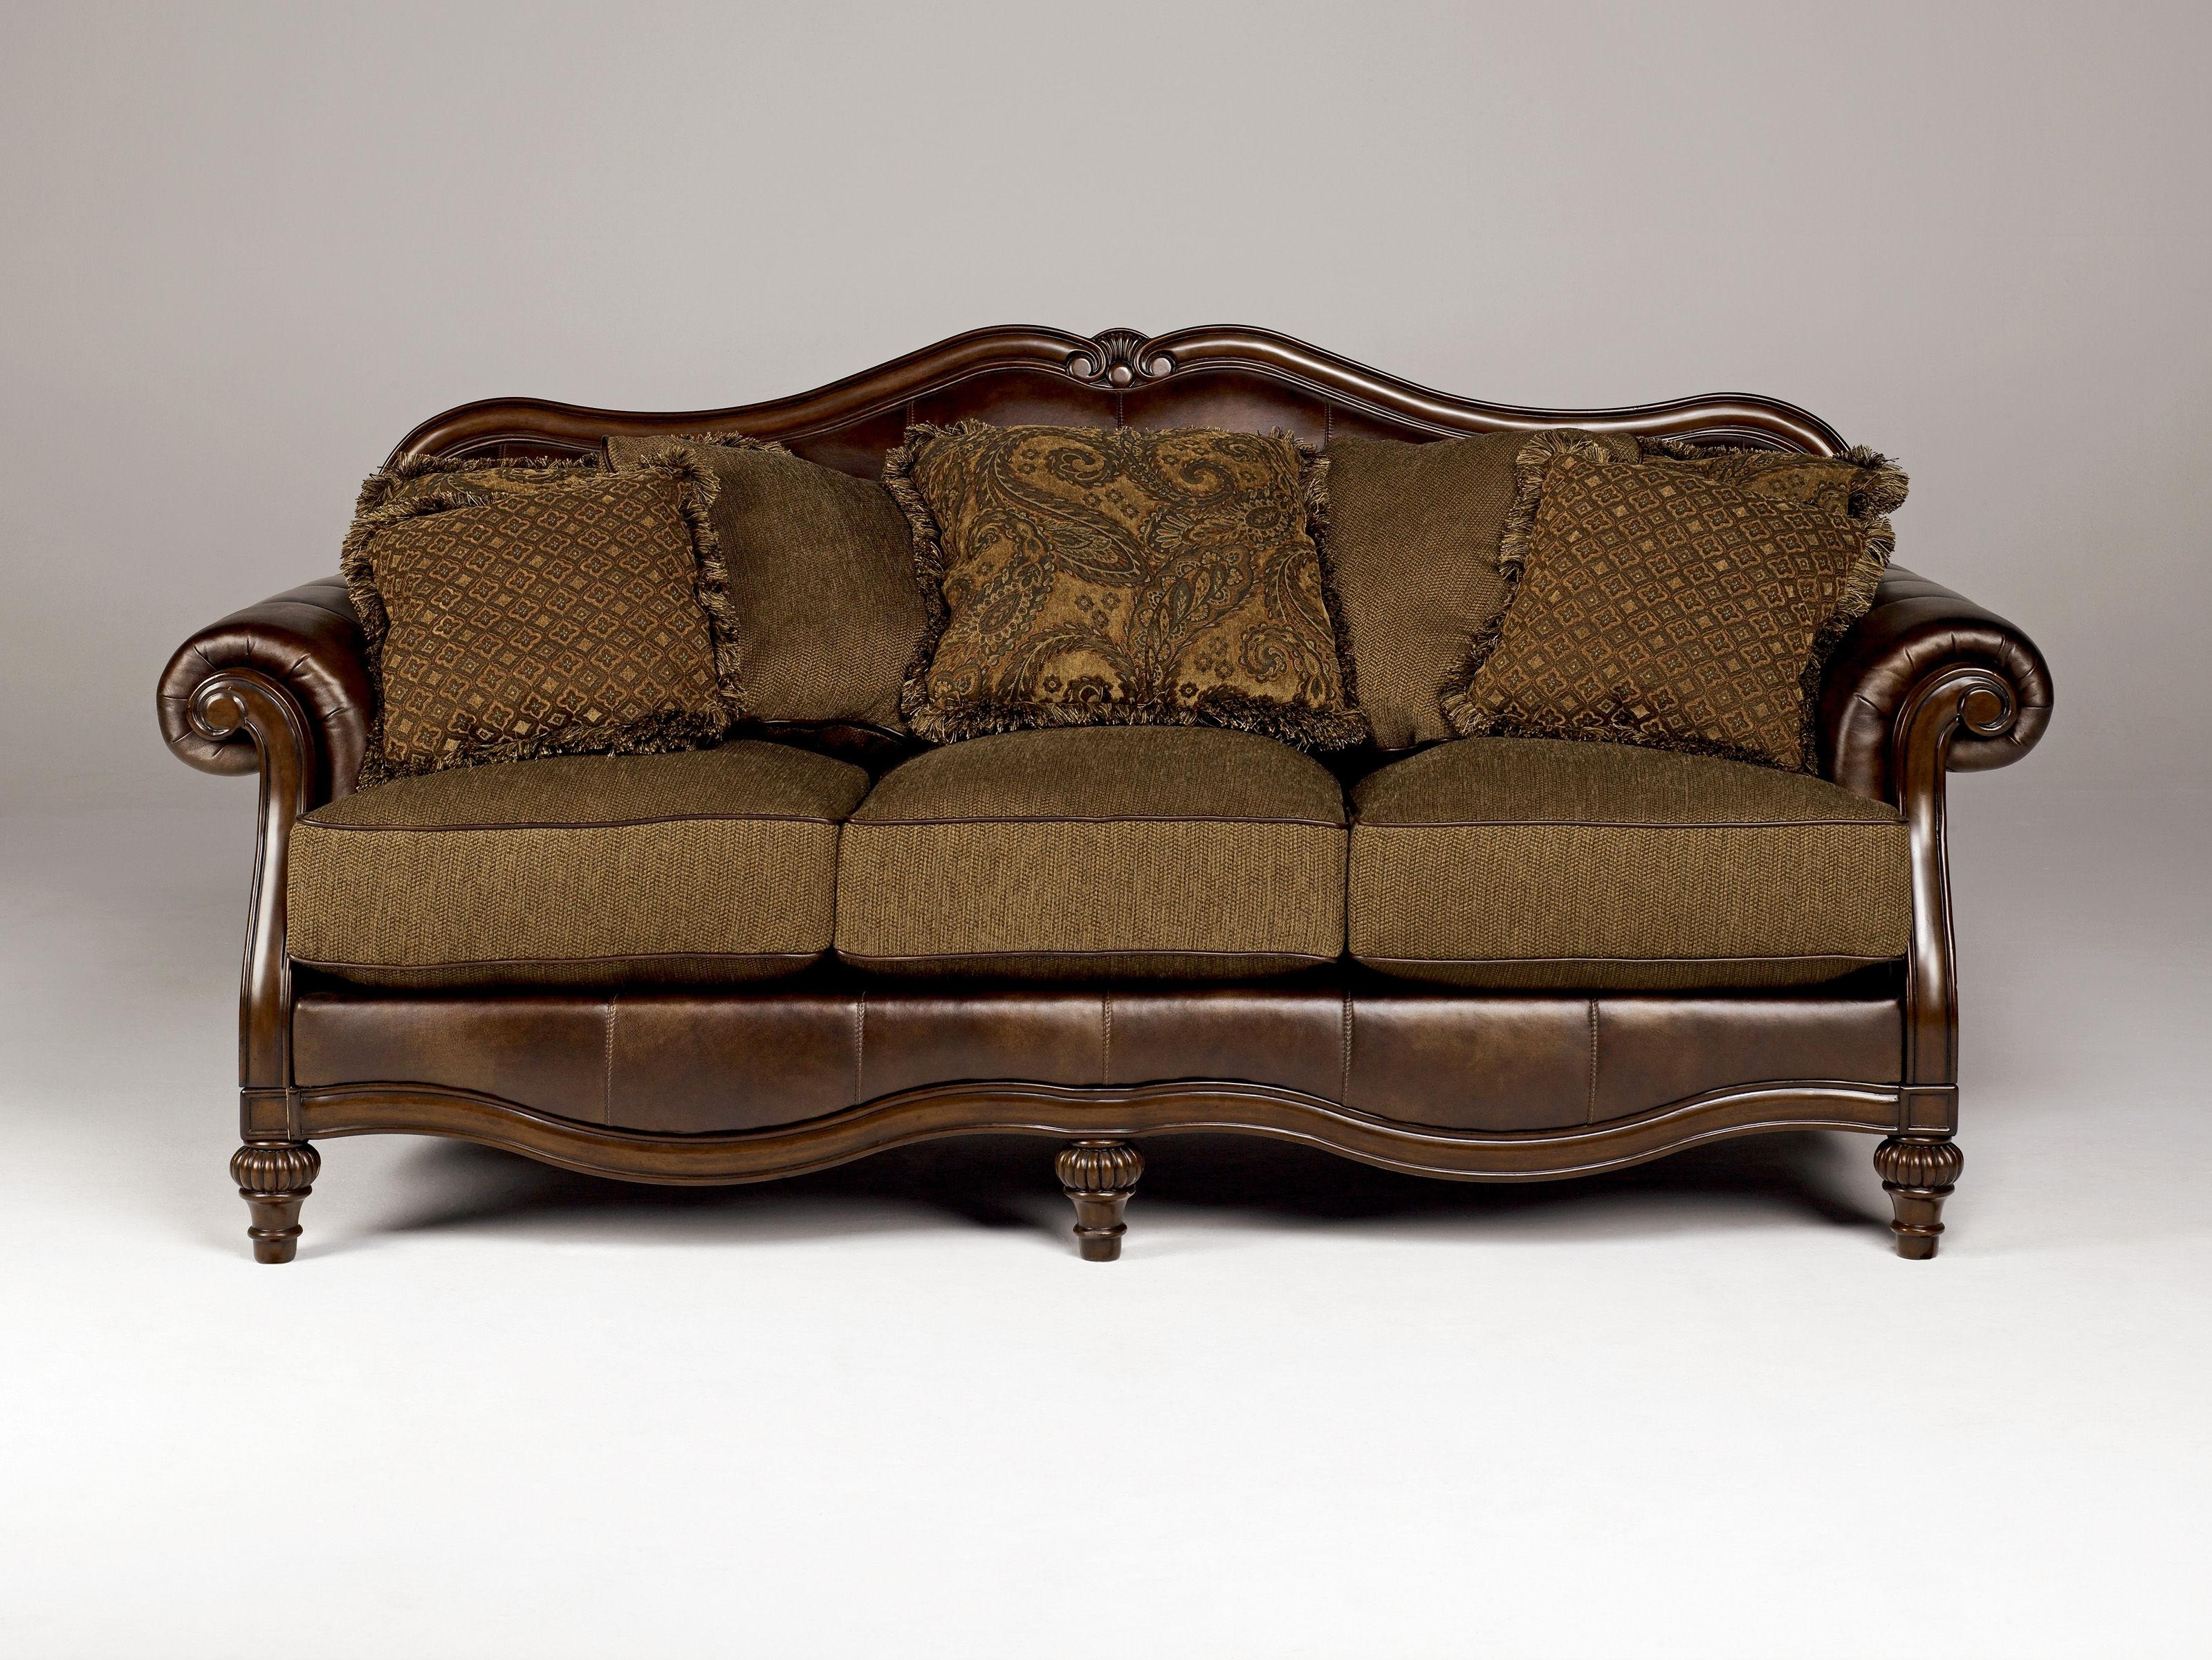 best leather sofa in the world rv bed for sale 20 top antique chairs ideas